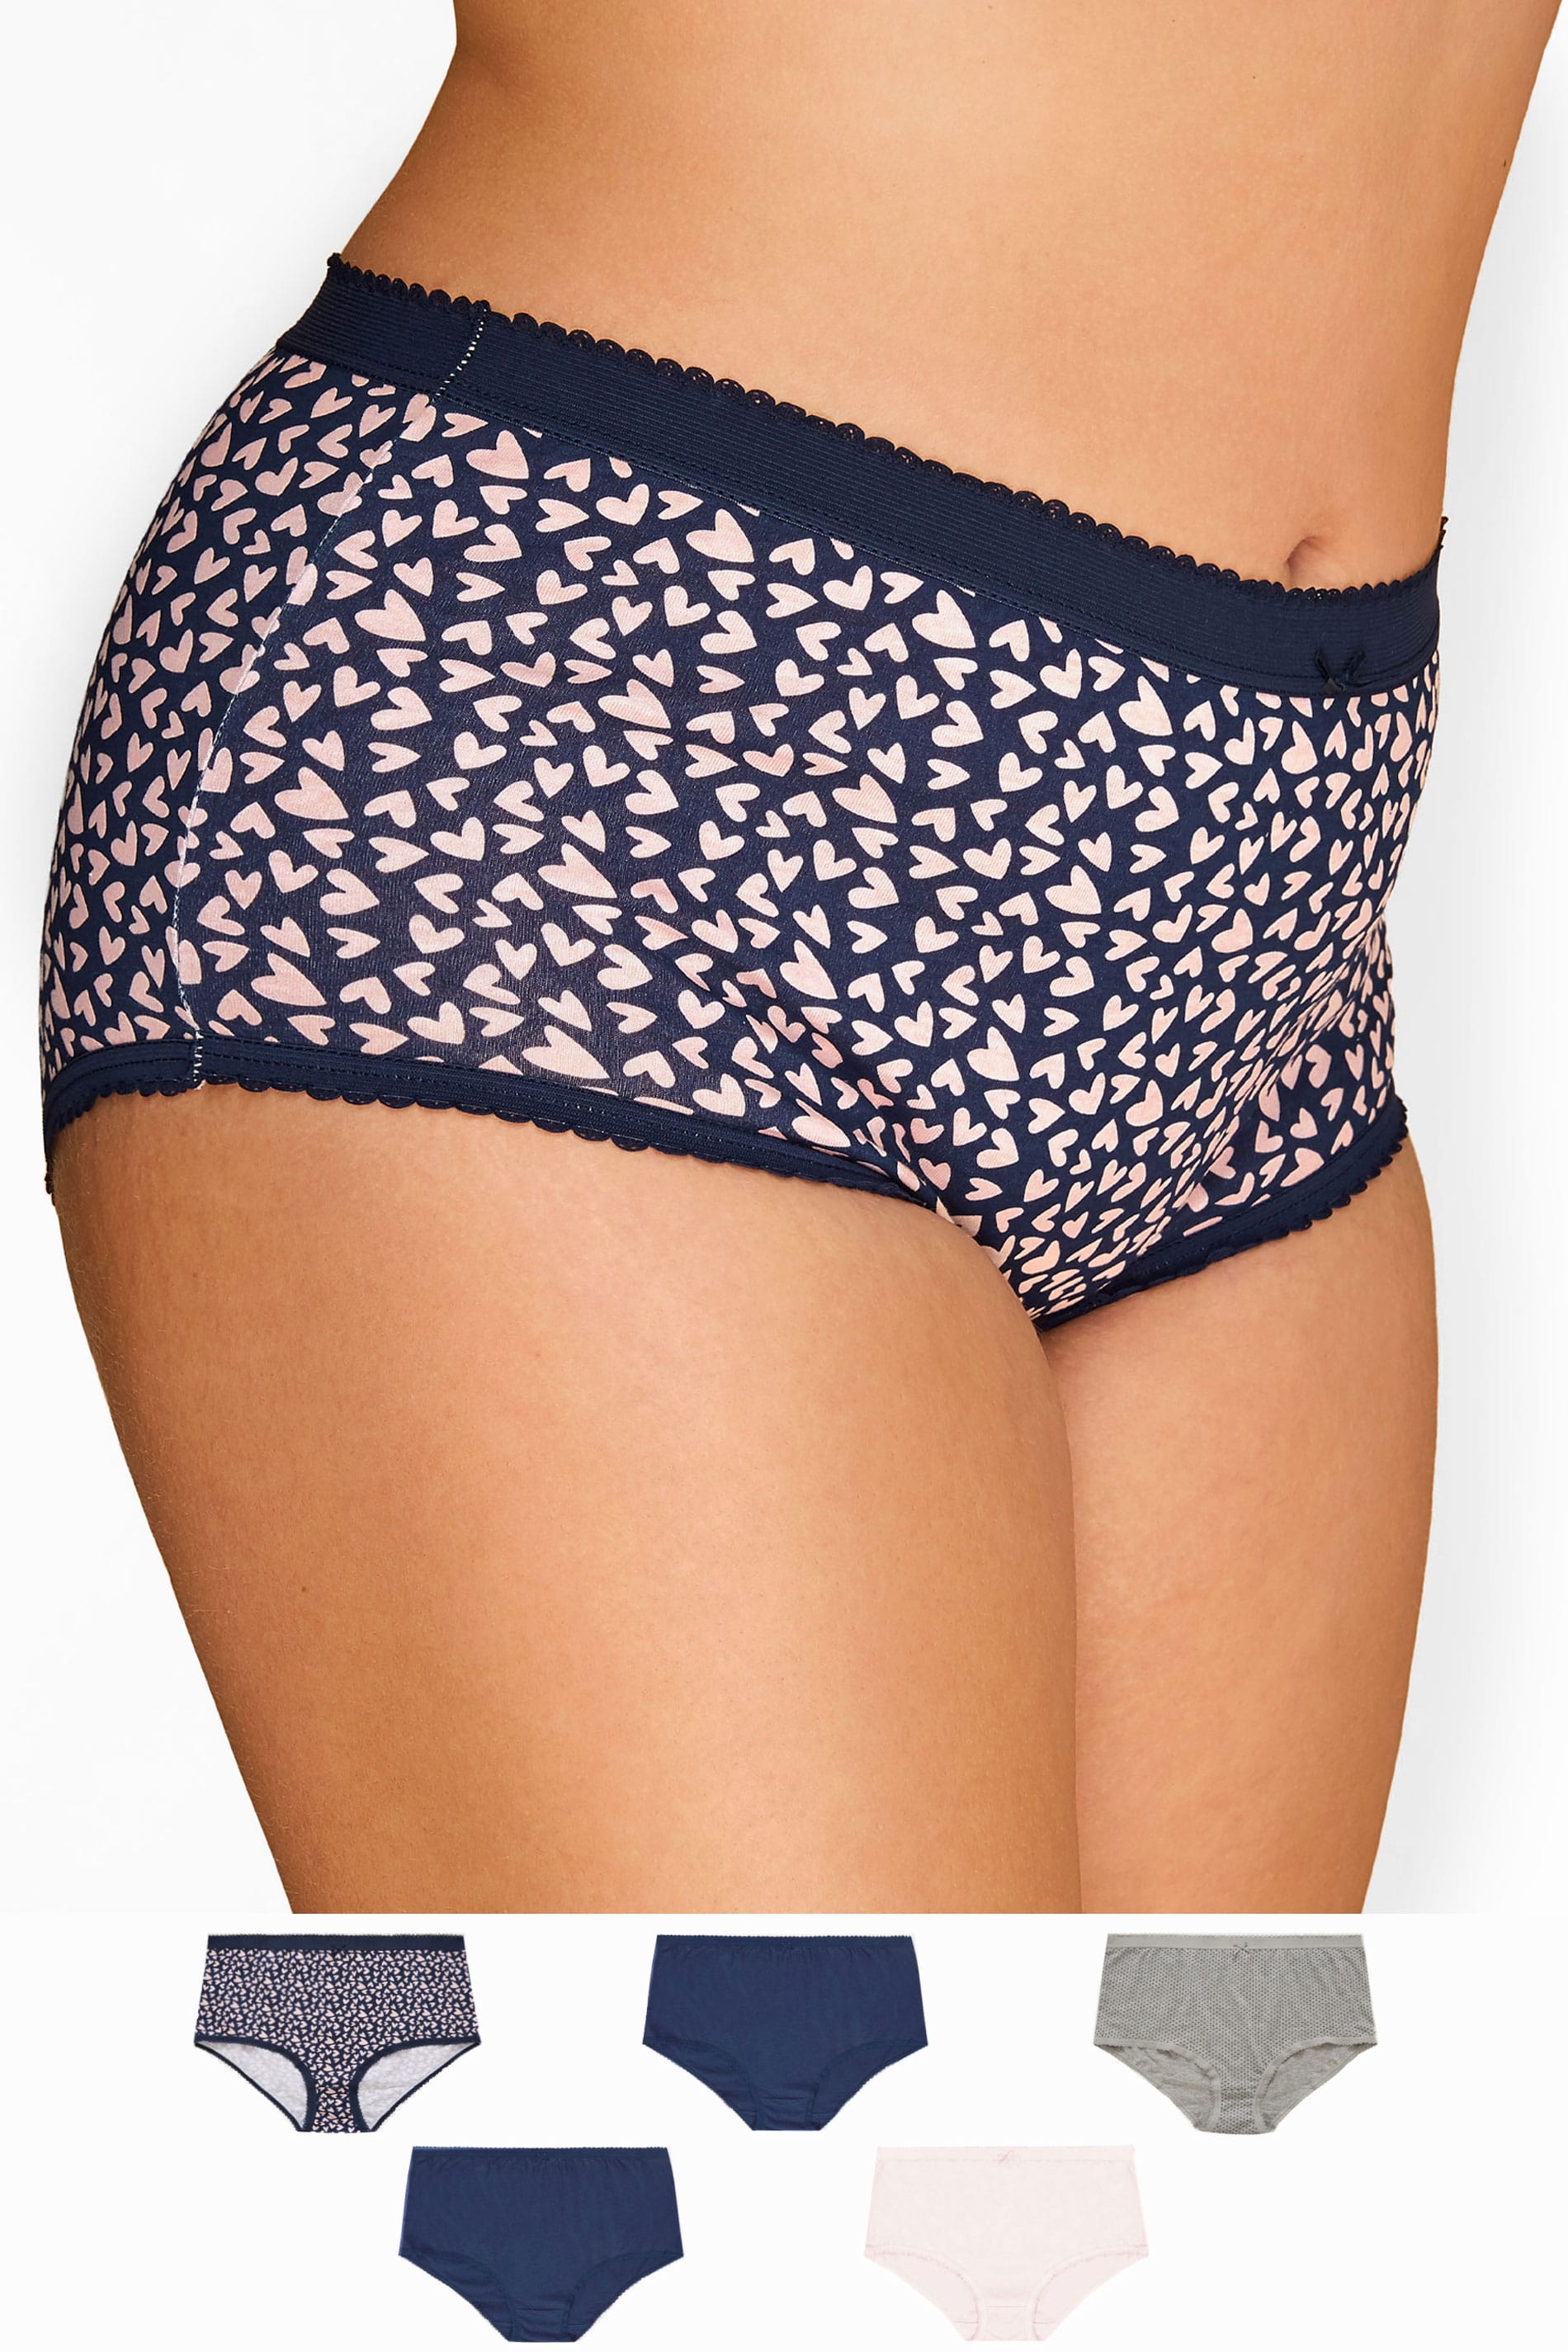 5 PACK Navy Heart & Spot Full Briefs